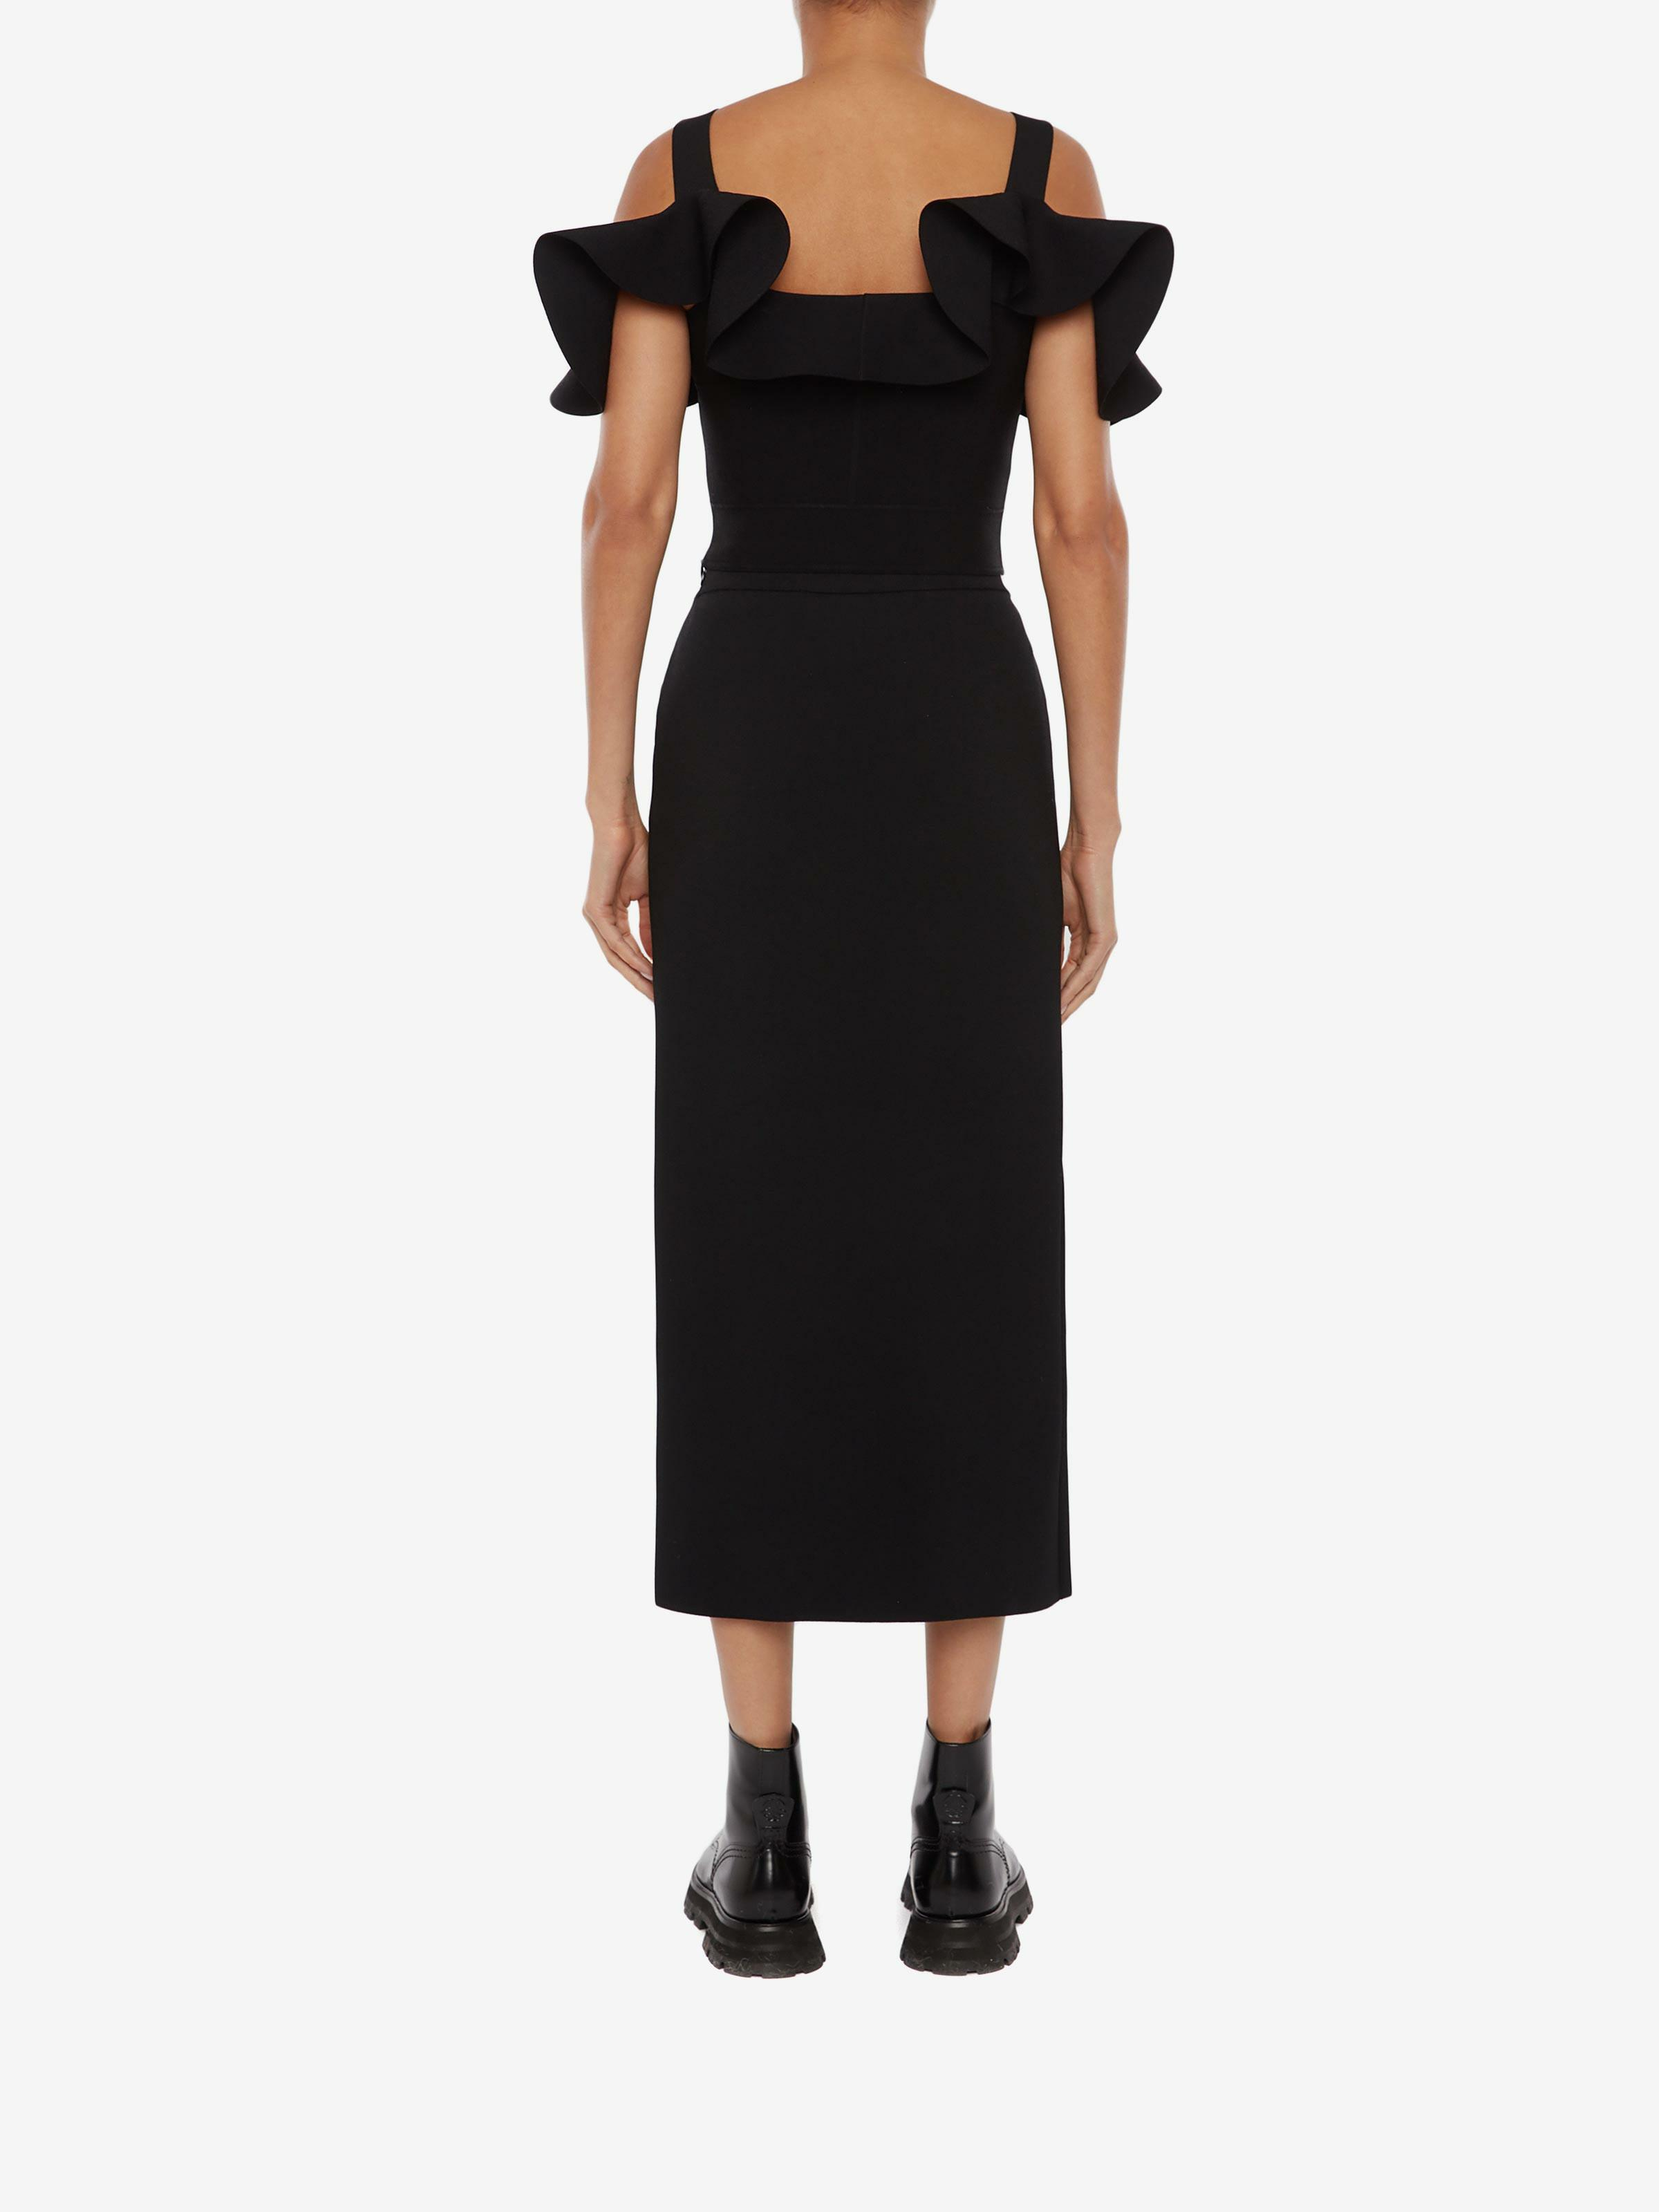 Engineered Sculpted Knit Pencil Skirt 2